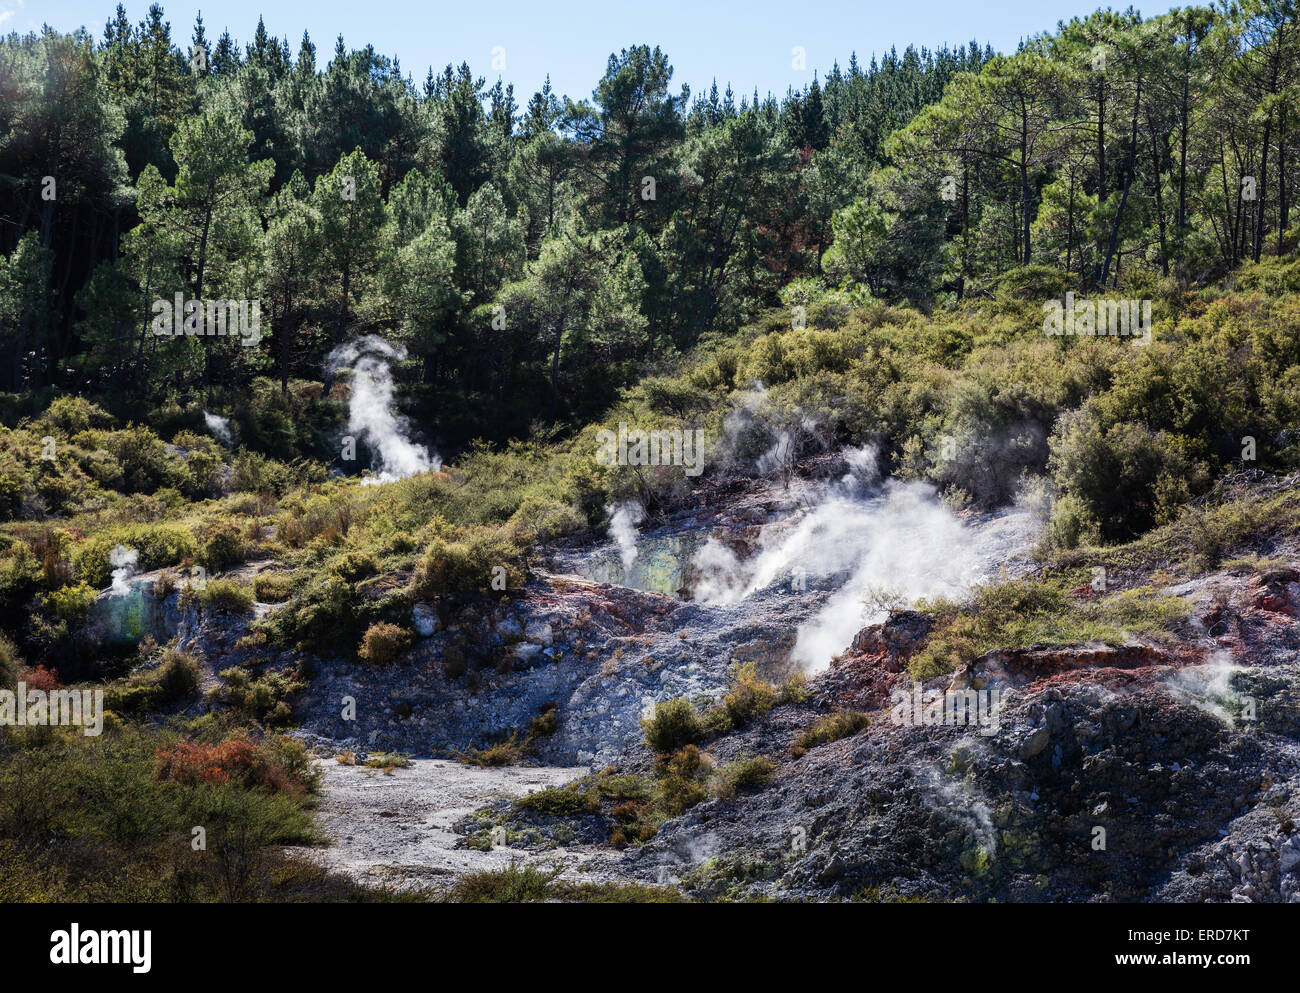 Volcanic landscape of craters and fumaroles amongst scrub and woodland at Wai o Tapu Thermal Wonderland New Zealand - Stock Image